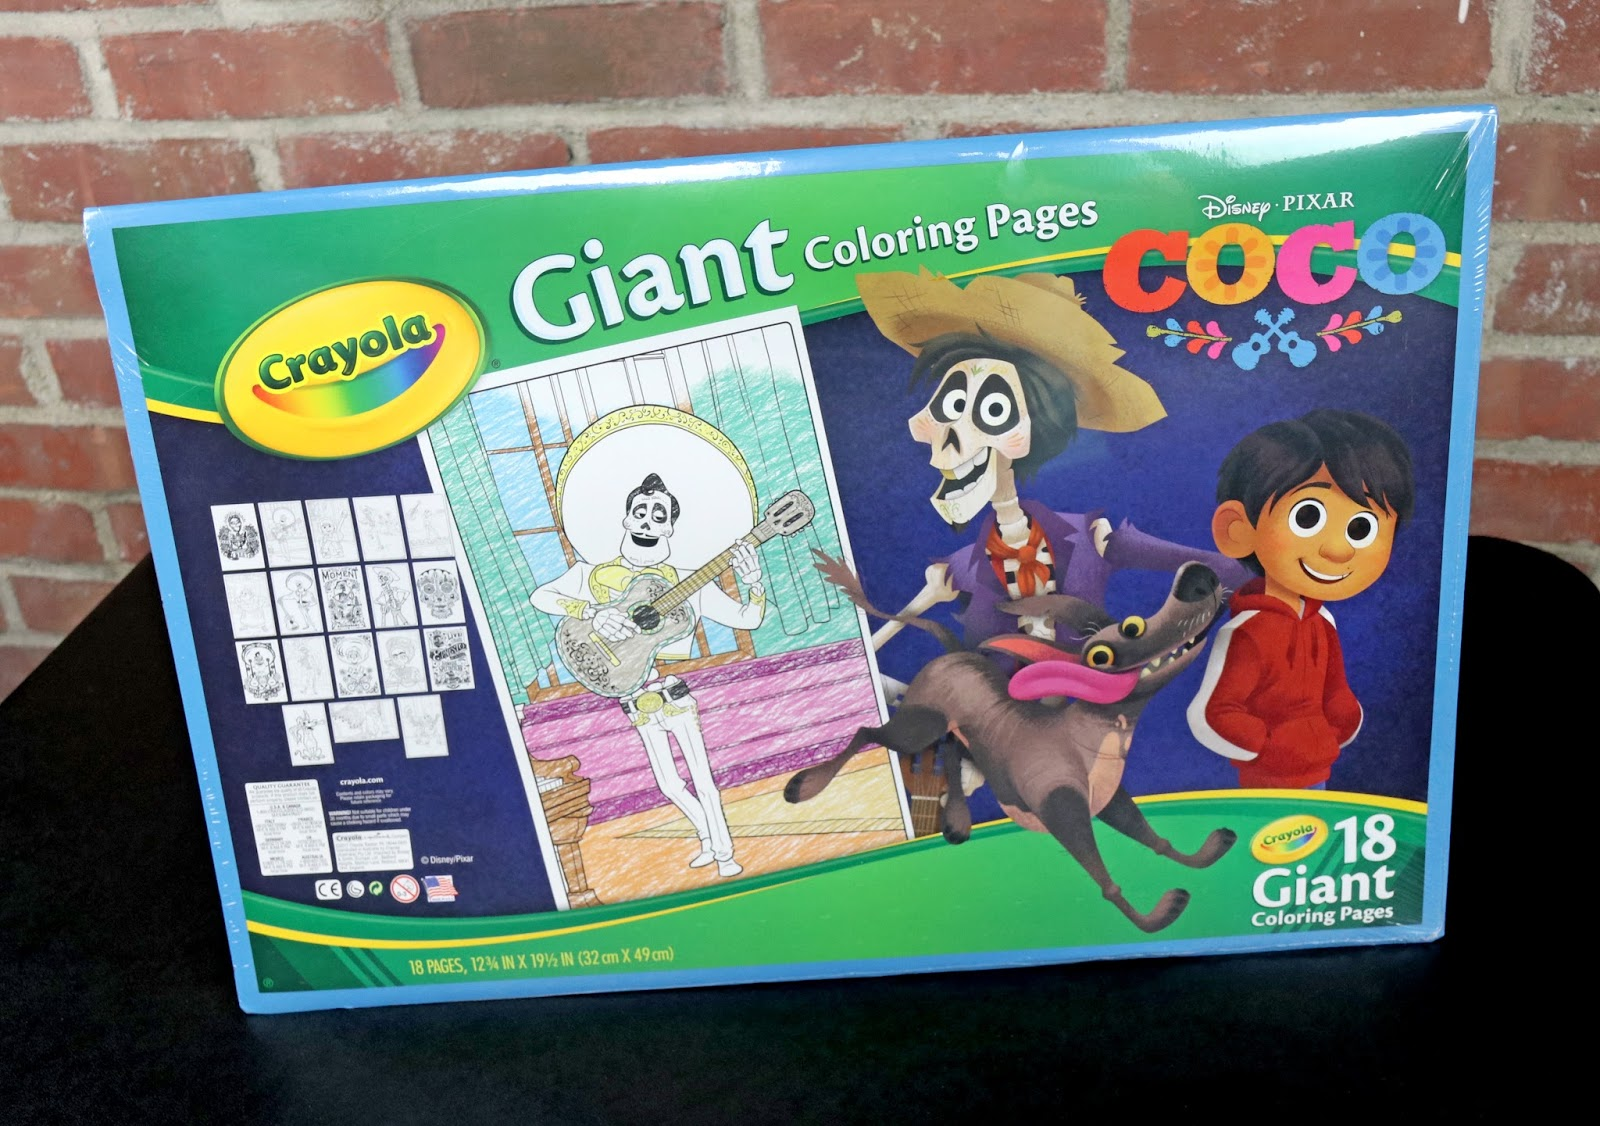 pixar coco crayola giant coloring book toys r us - Giant Coloring Book